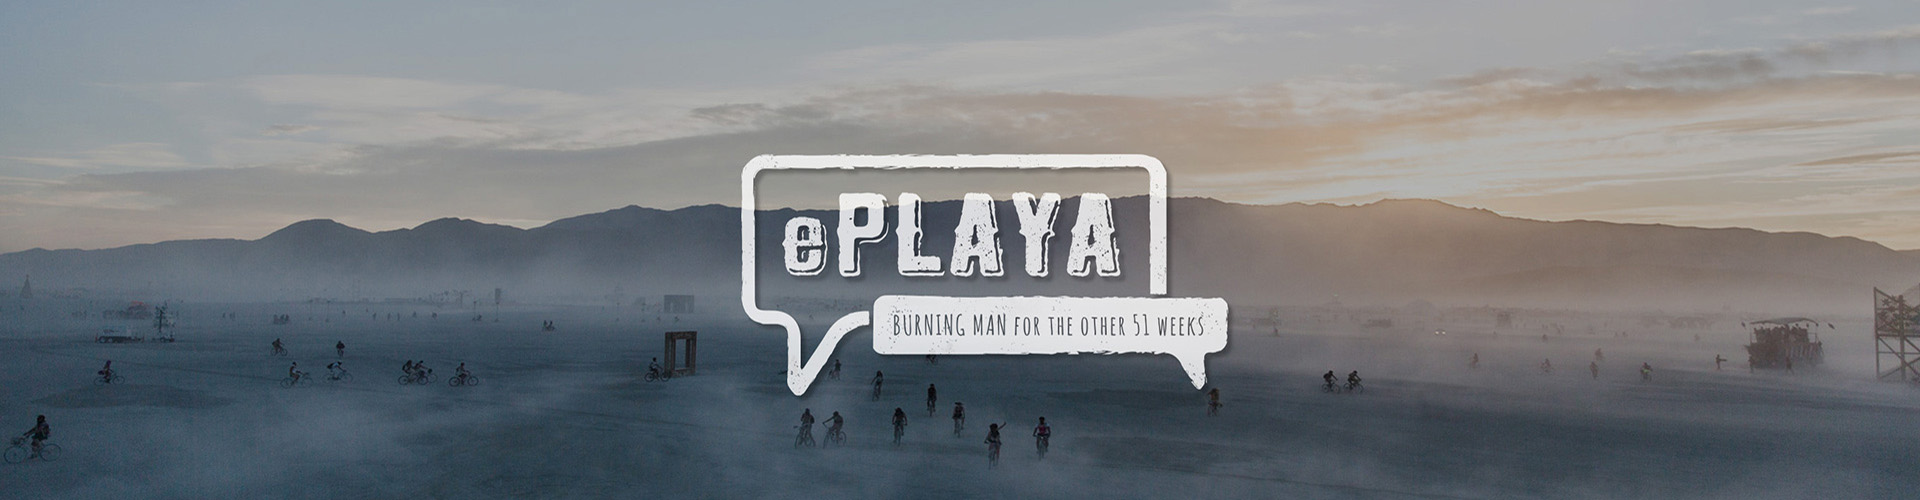 ePlaya: Burning Man for the other 51 weeks